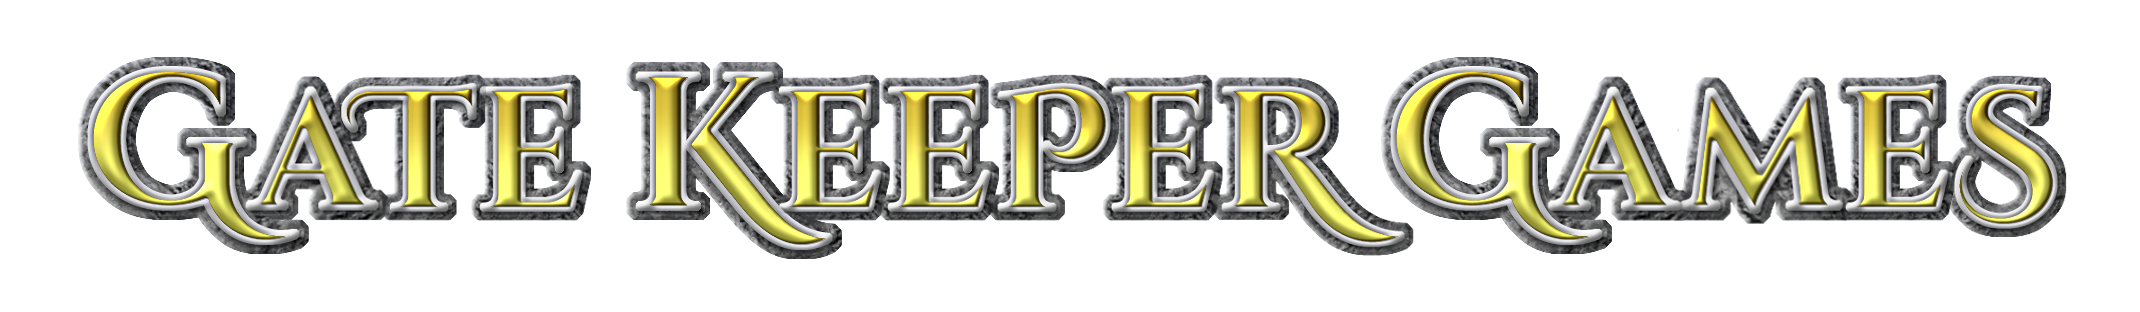 Gate Keeper Games in TKA lettering